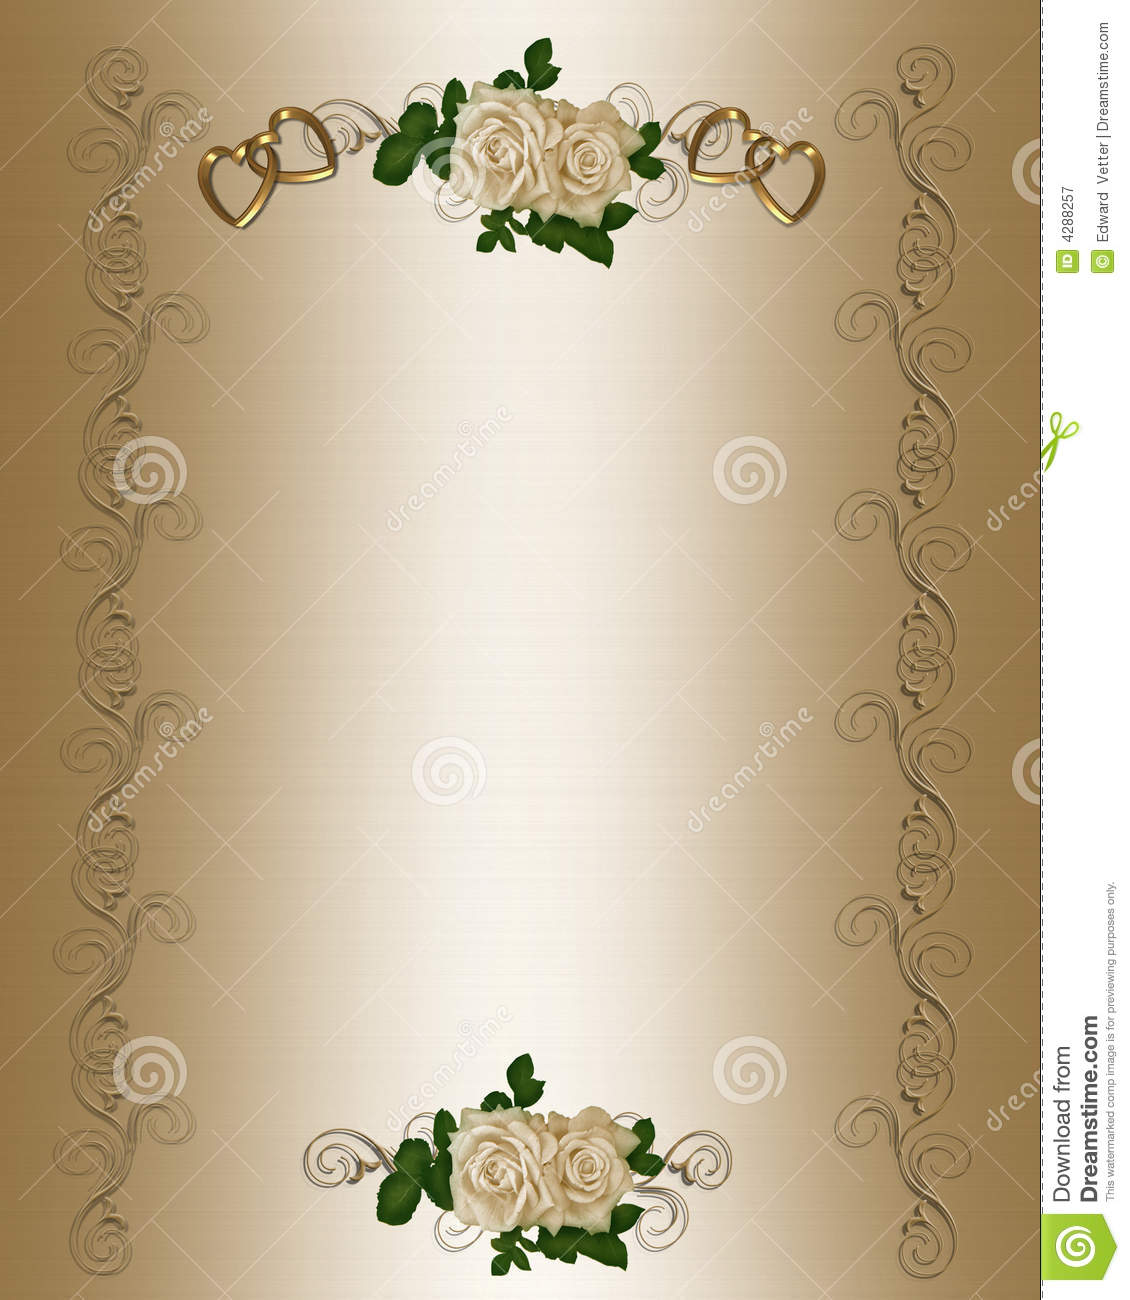 Wedding Invitation Template Stock Illustration Illustration of